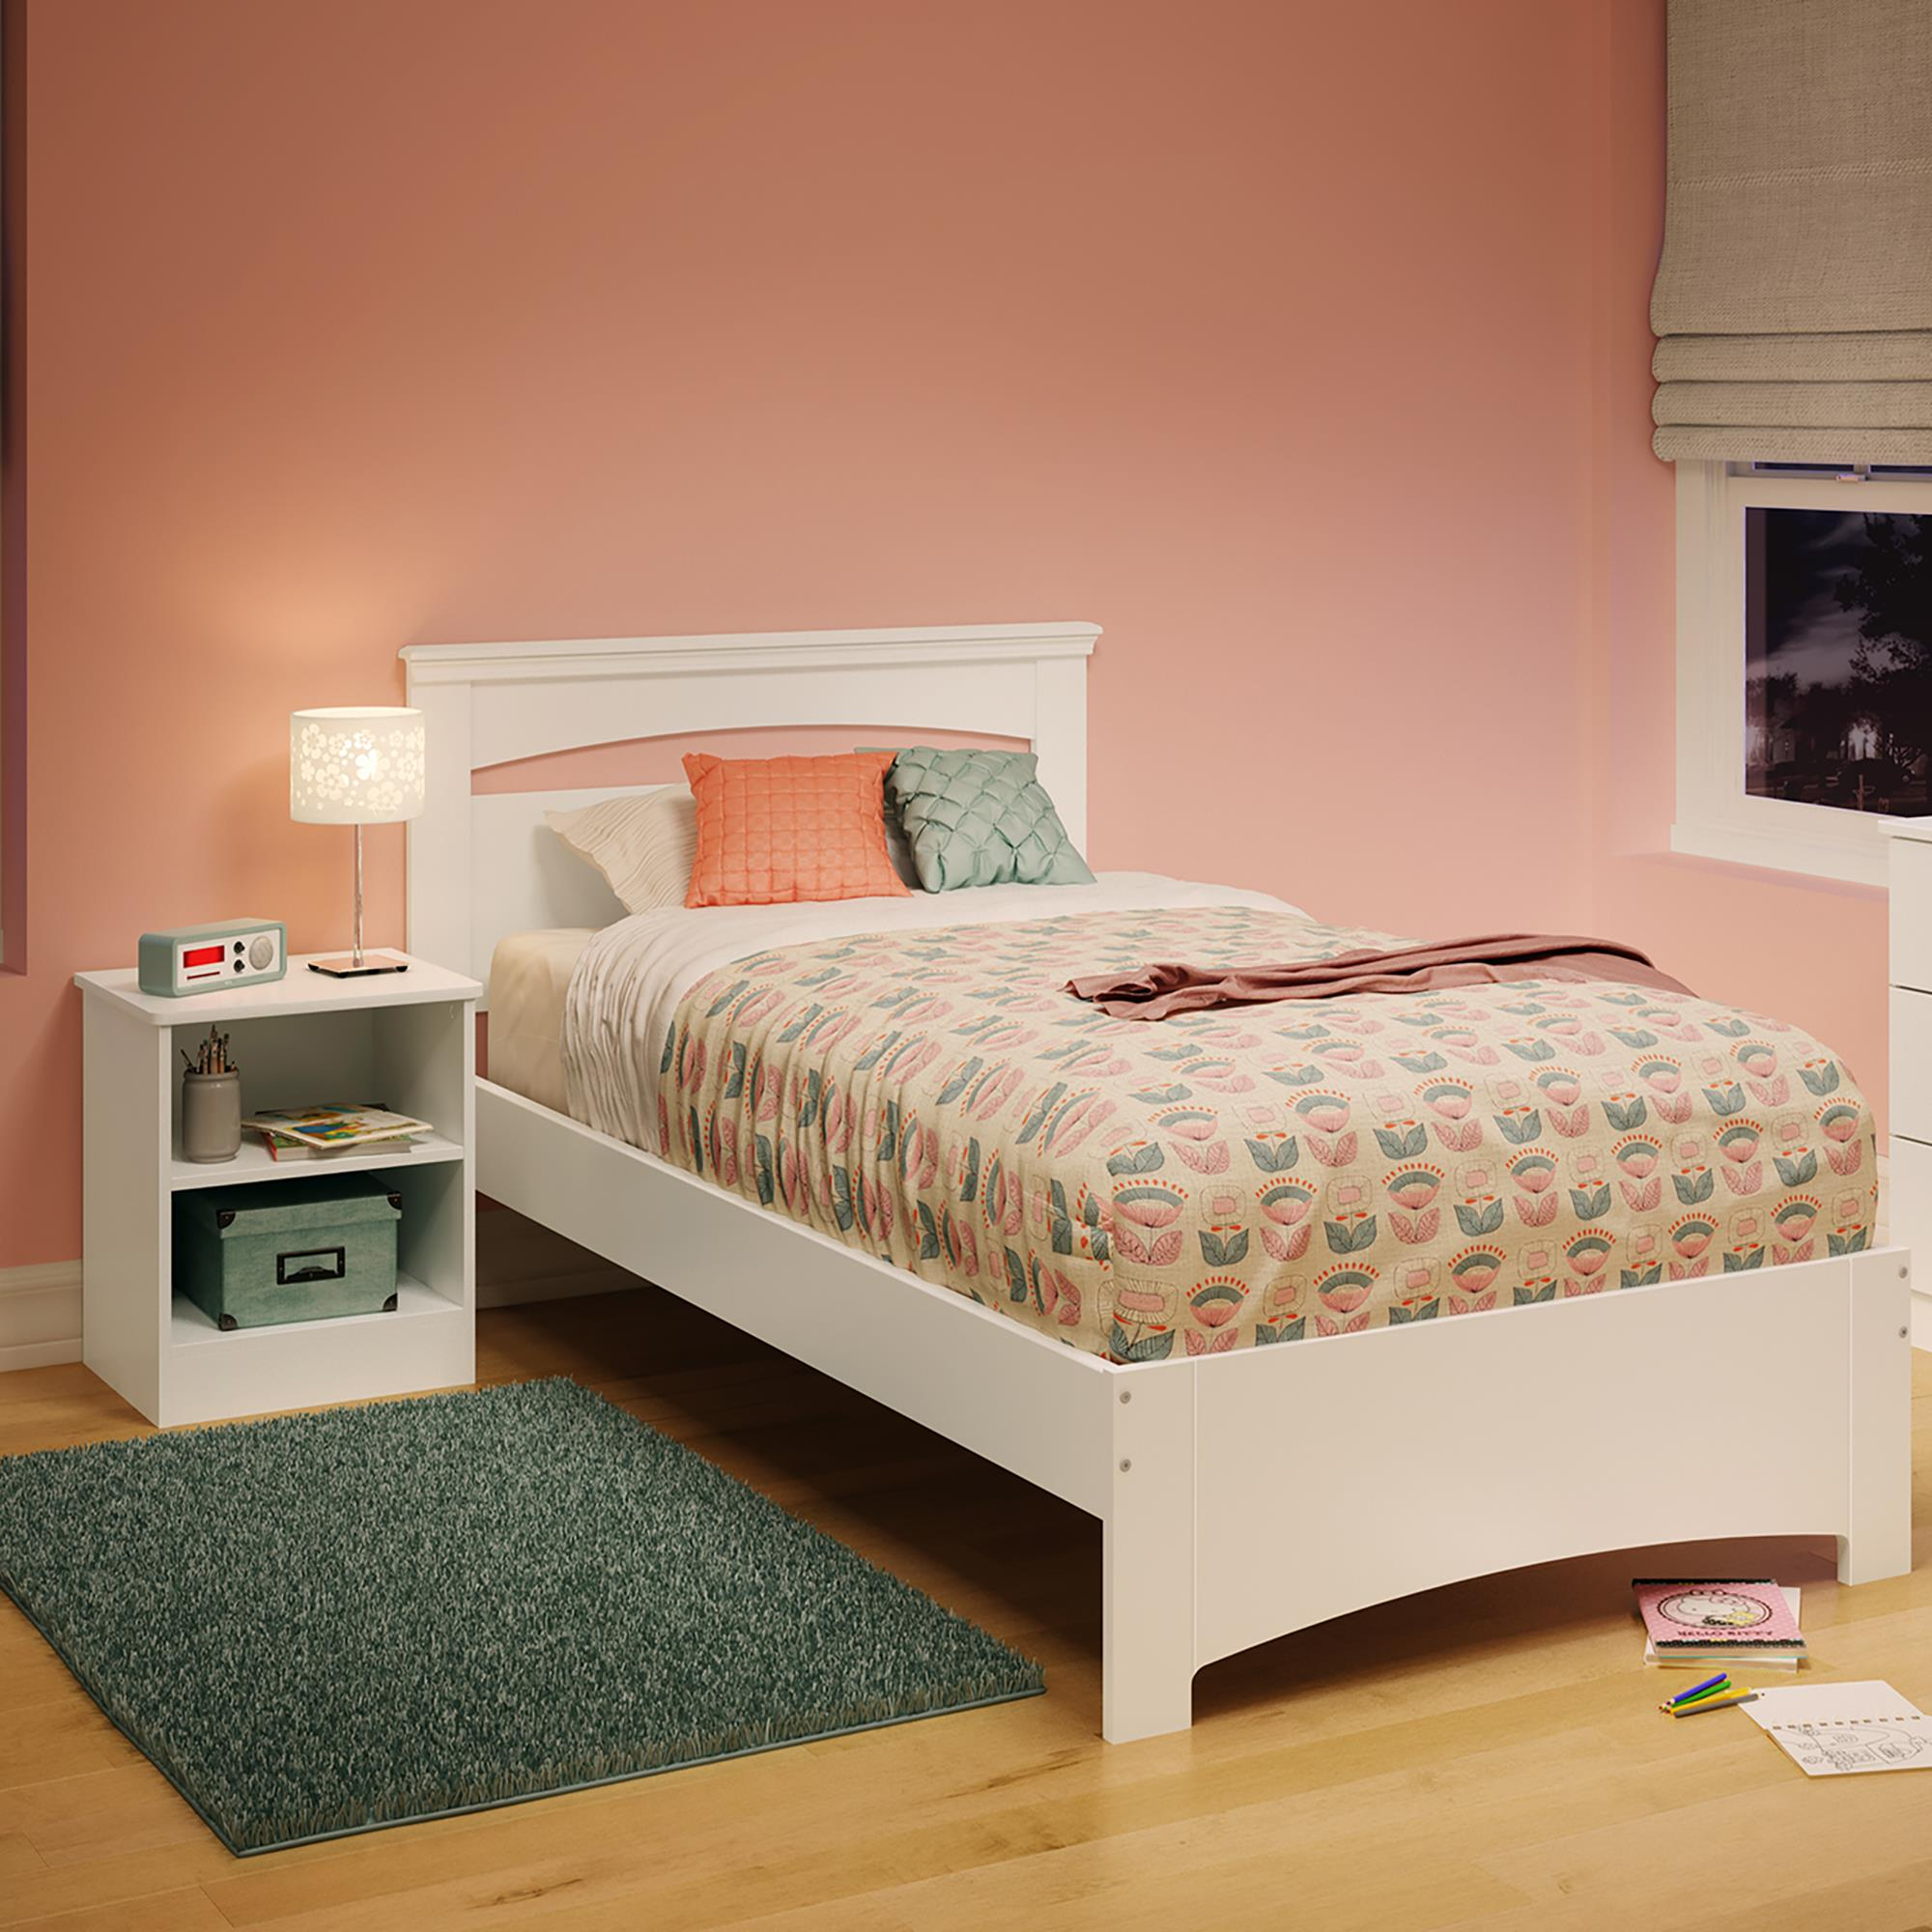 Bed Set With Nightstand-Finish:Pure White,Style:Contemporary